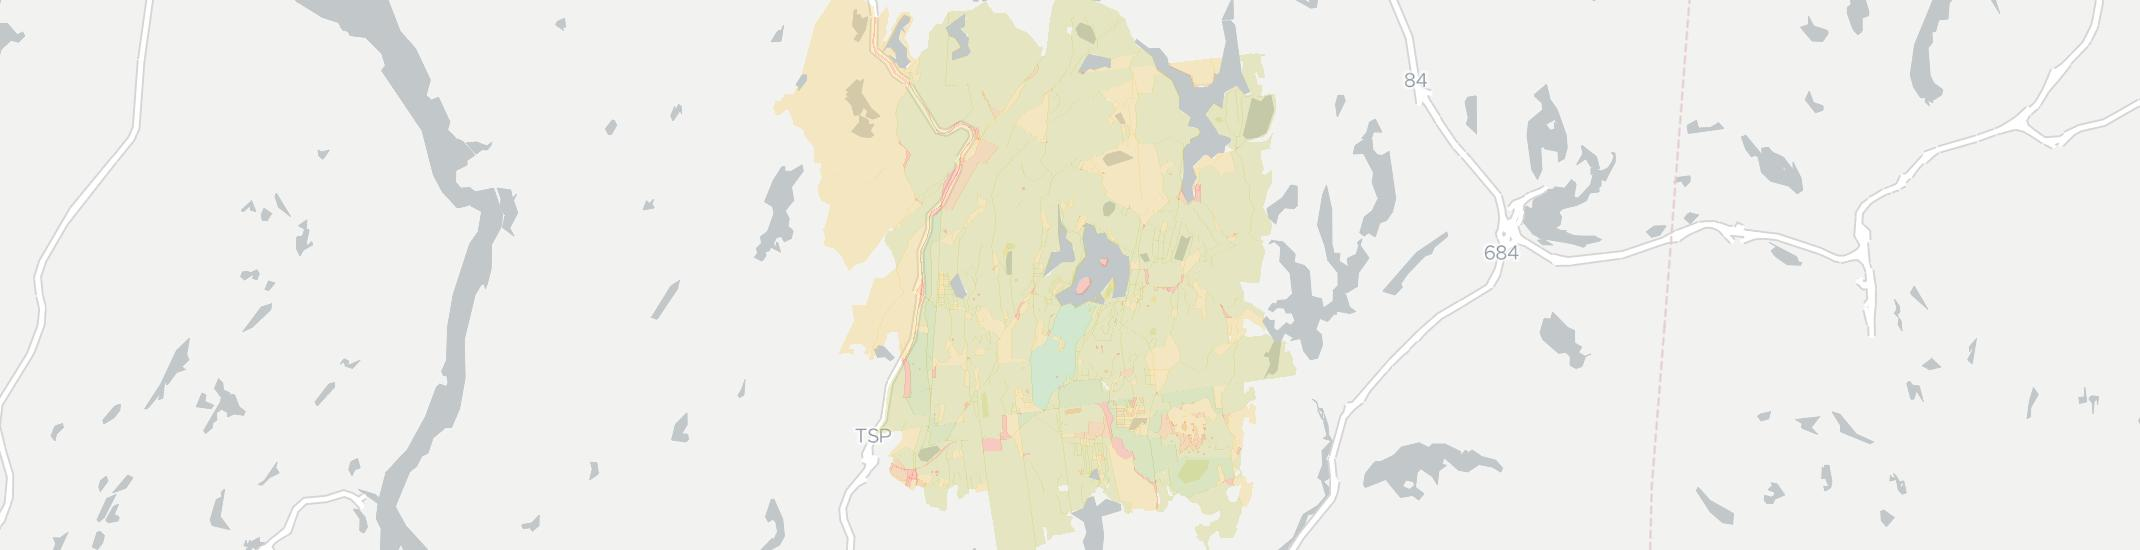 Mahopac Internet Competition Map. Click for interactive map.